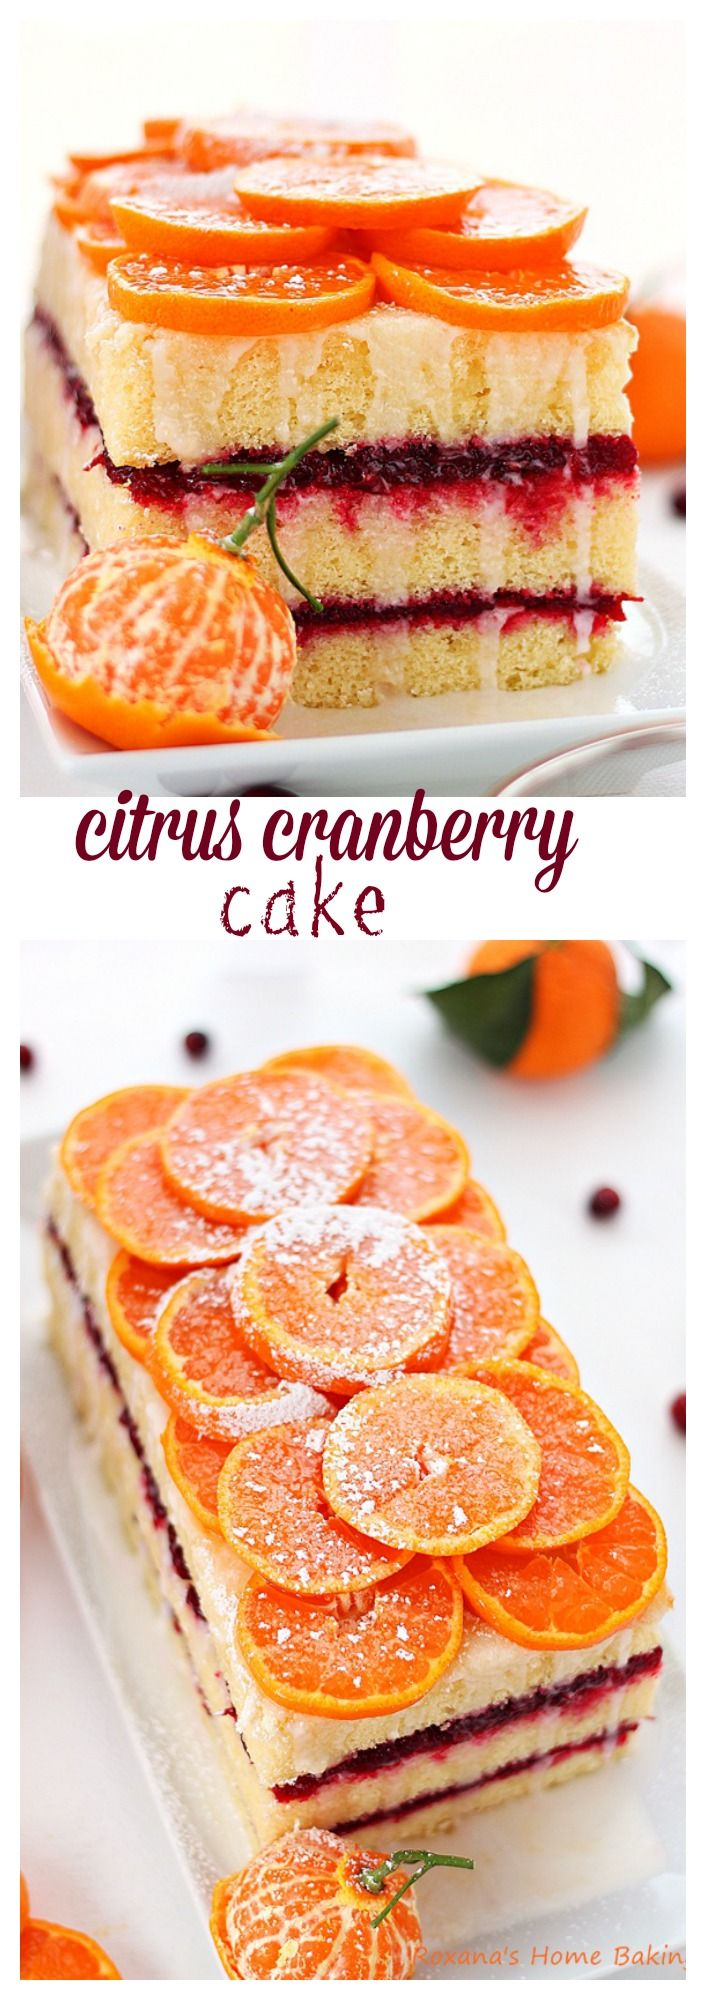 Citrus cranberry layer cake - a light and refreshing citrus cake sandwiched with tart cranberry sauce for an explosion of flavors and textures.